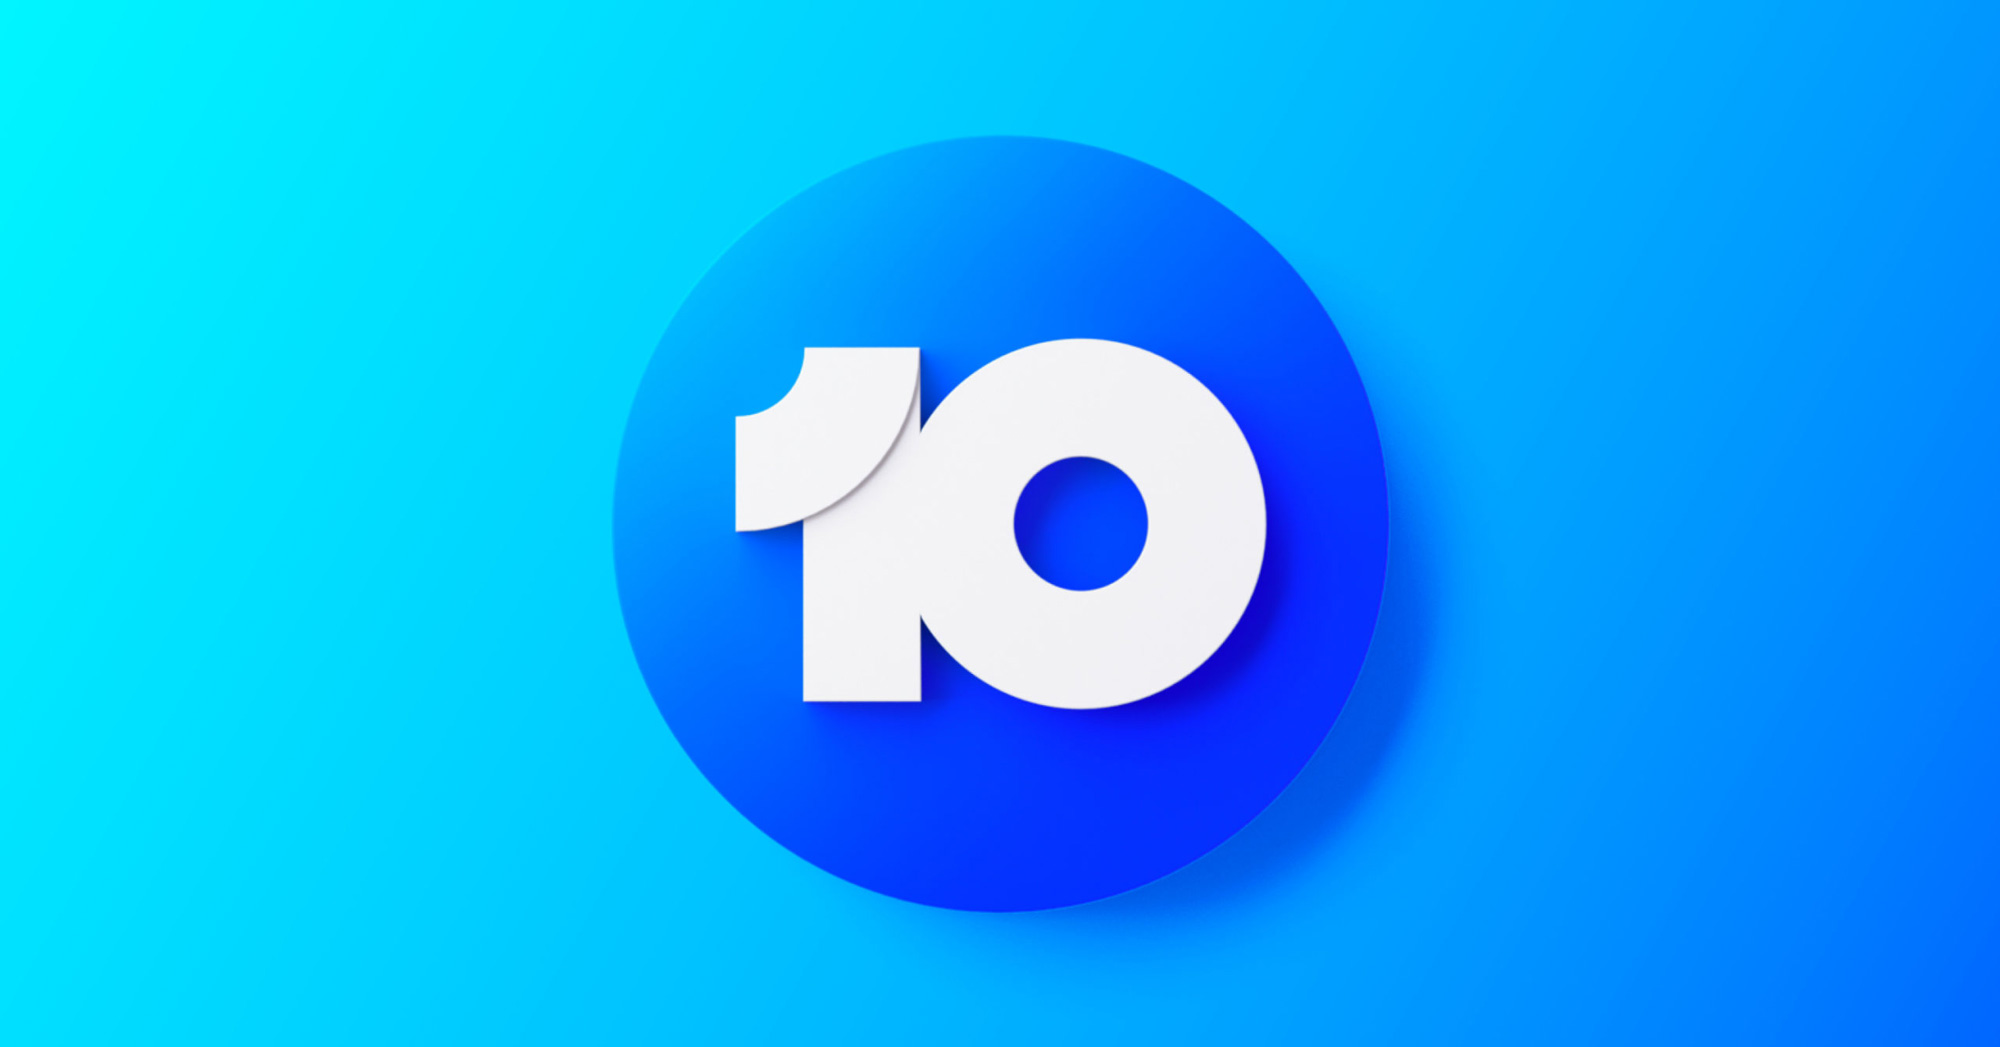 New Logo and On-air Look for Network 10 by Principals and In-house